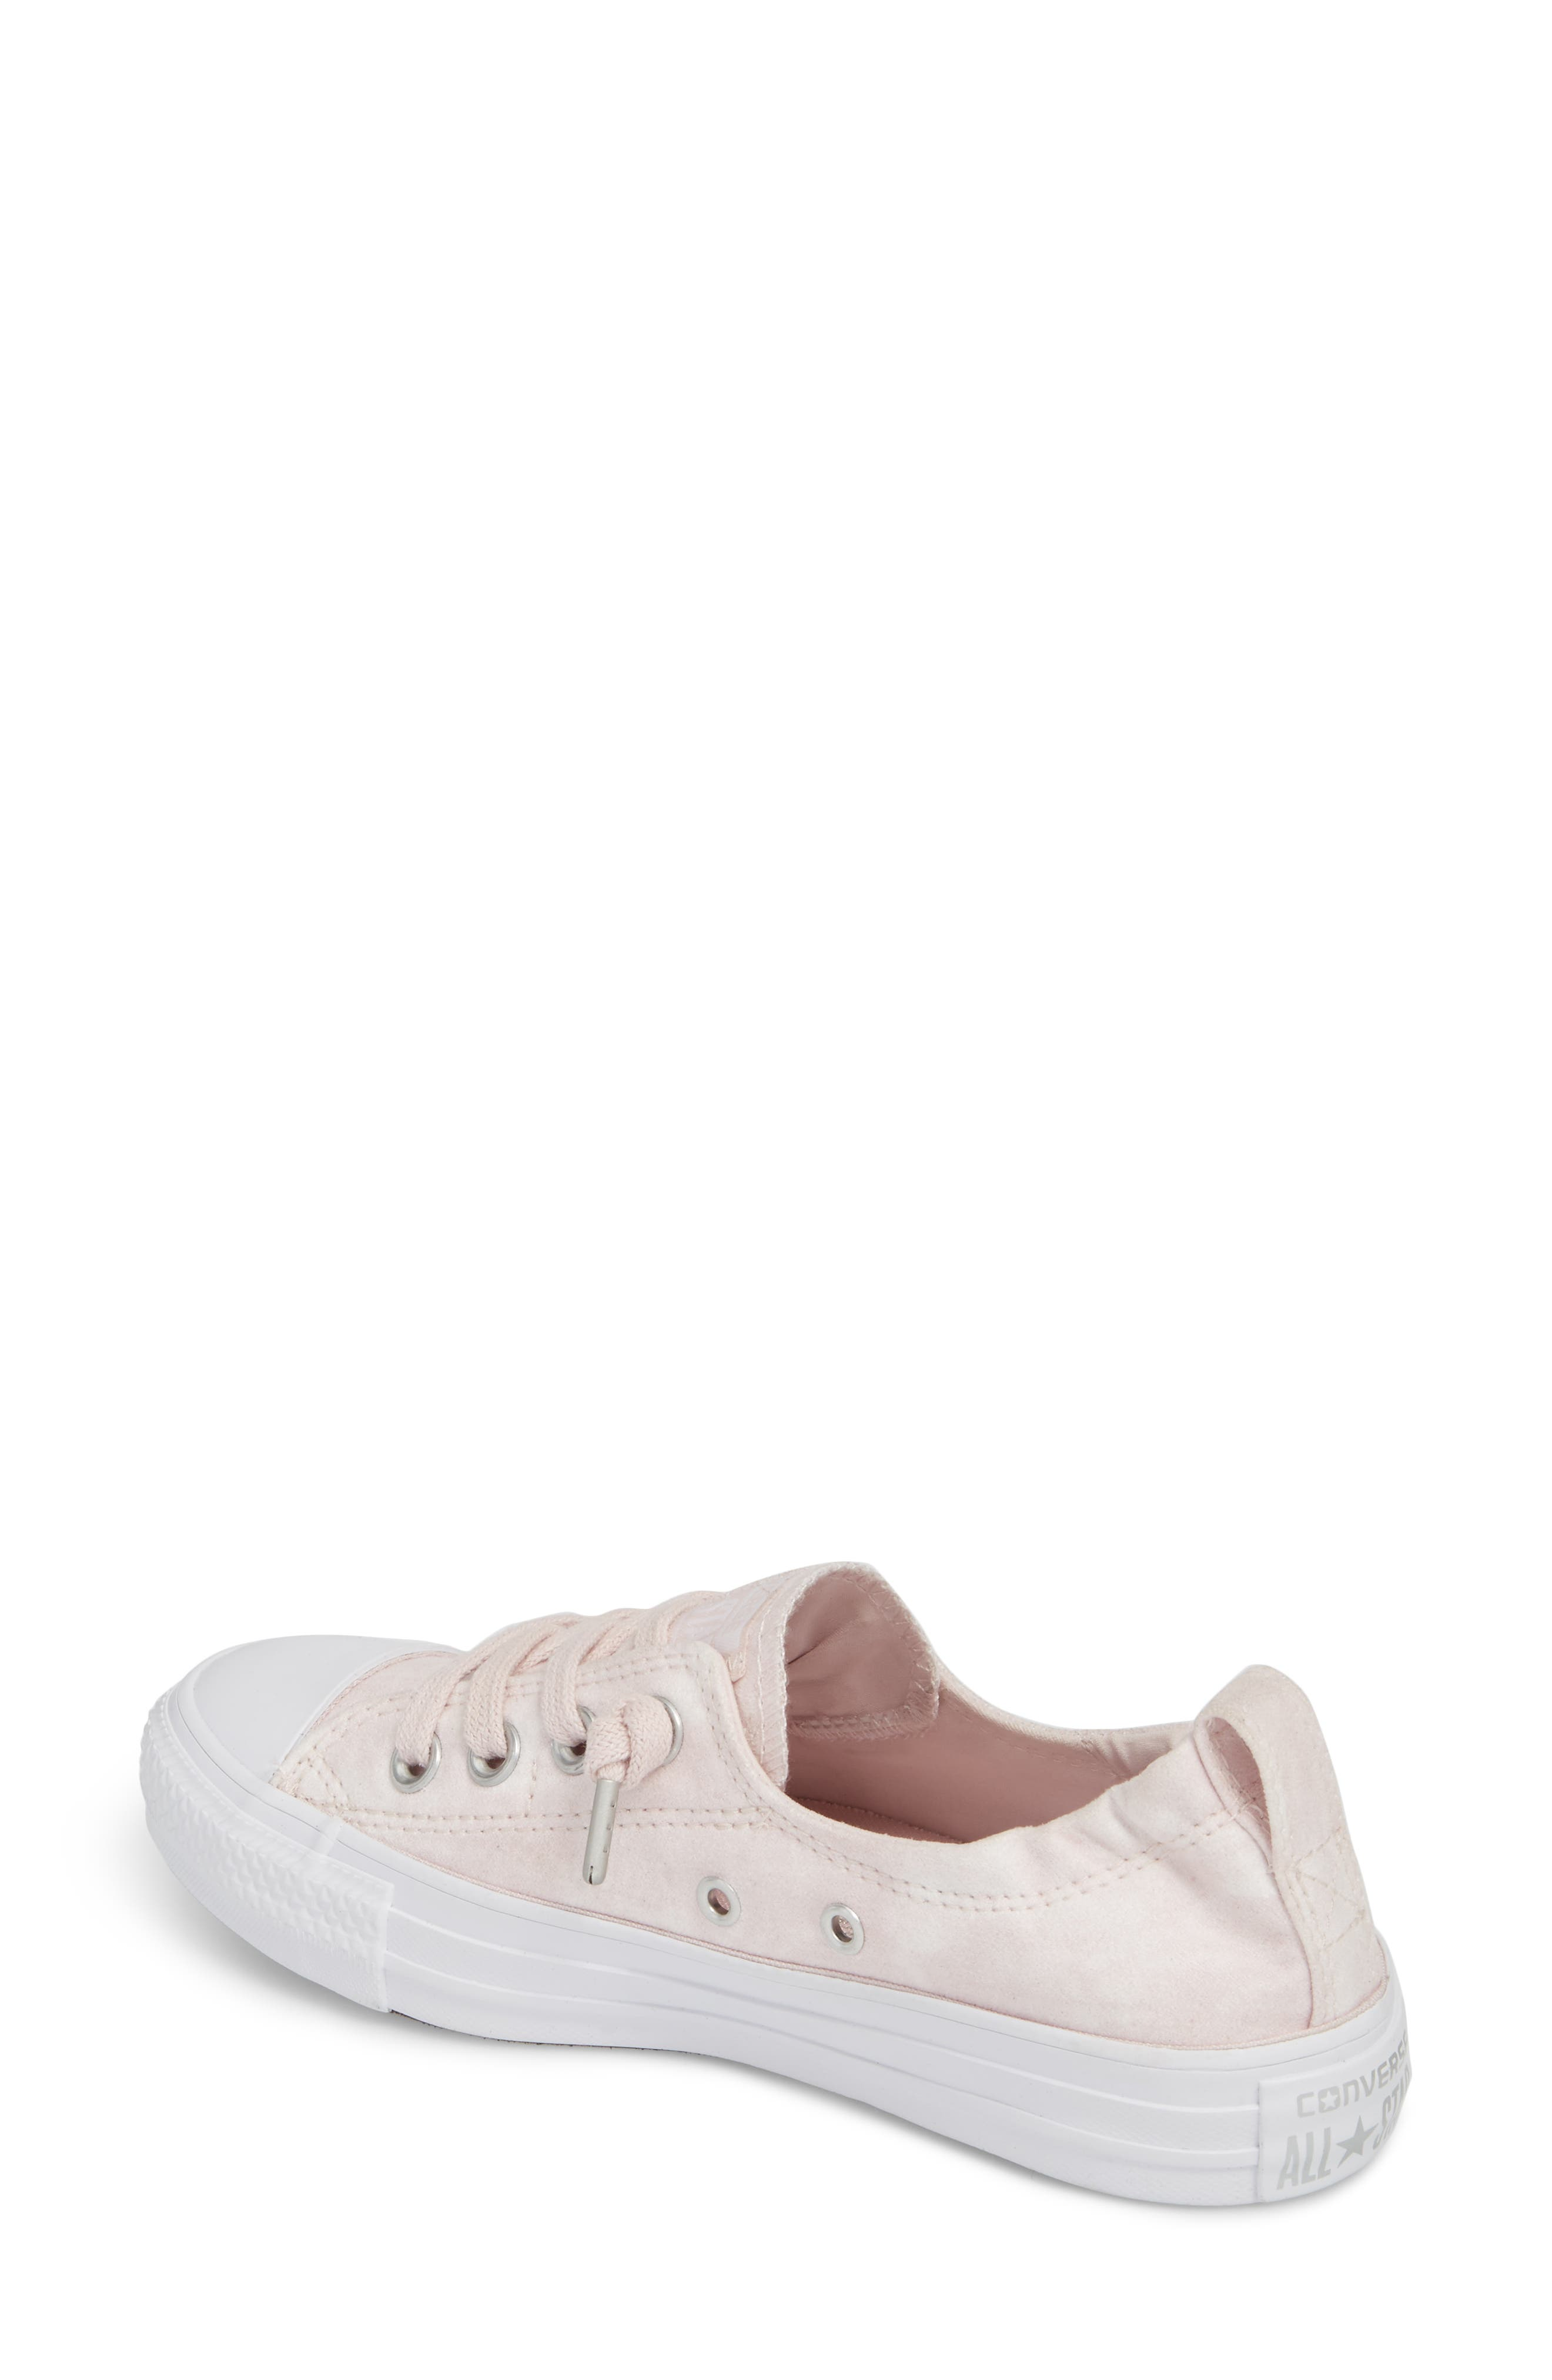 Chuck Taylor<sup>®</sup> All Star<sup>®</sup> Shoreline Peached Twill Sneaker,                             Alternate thumbnail 2, color,                             Barely Rose